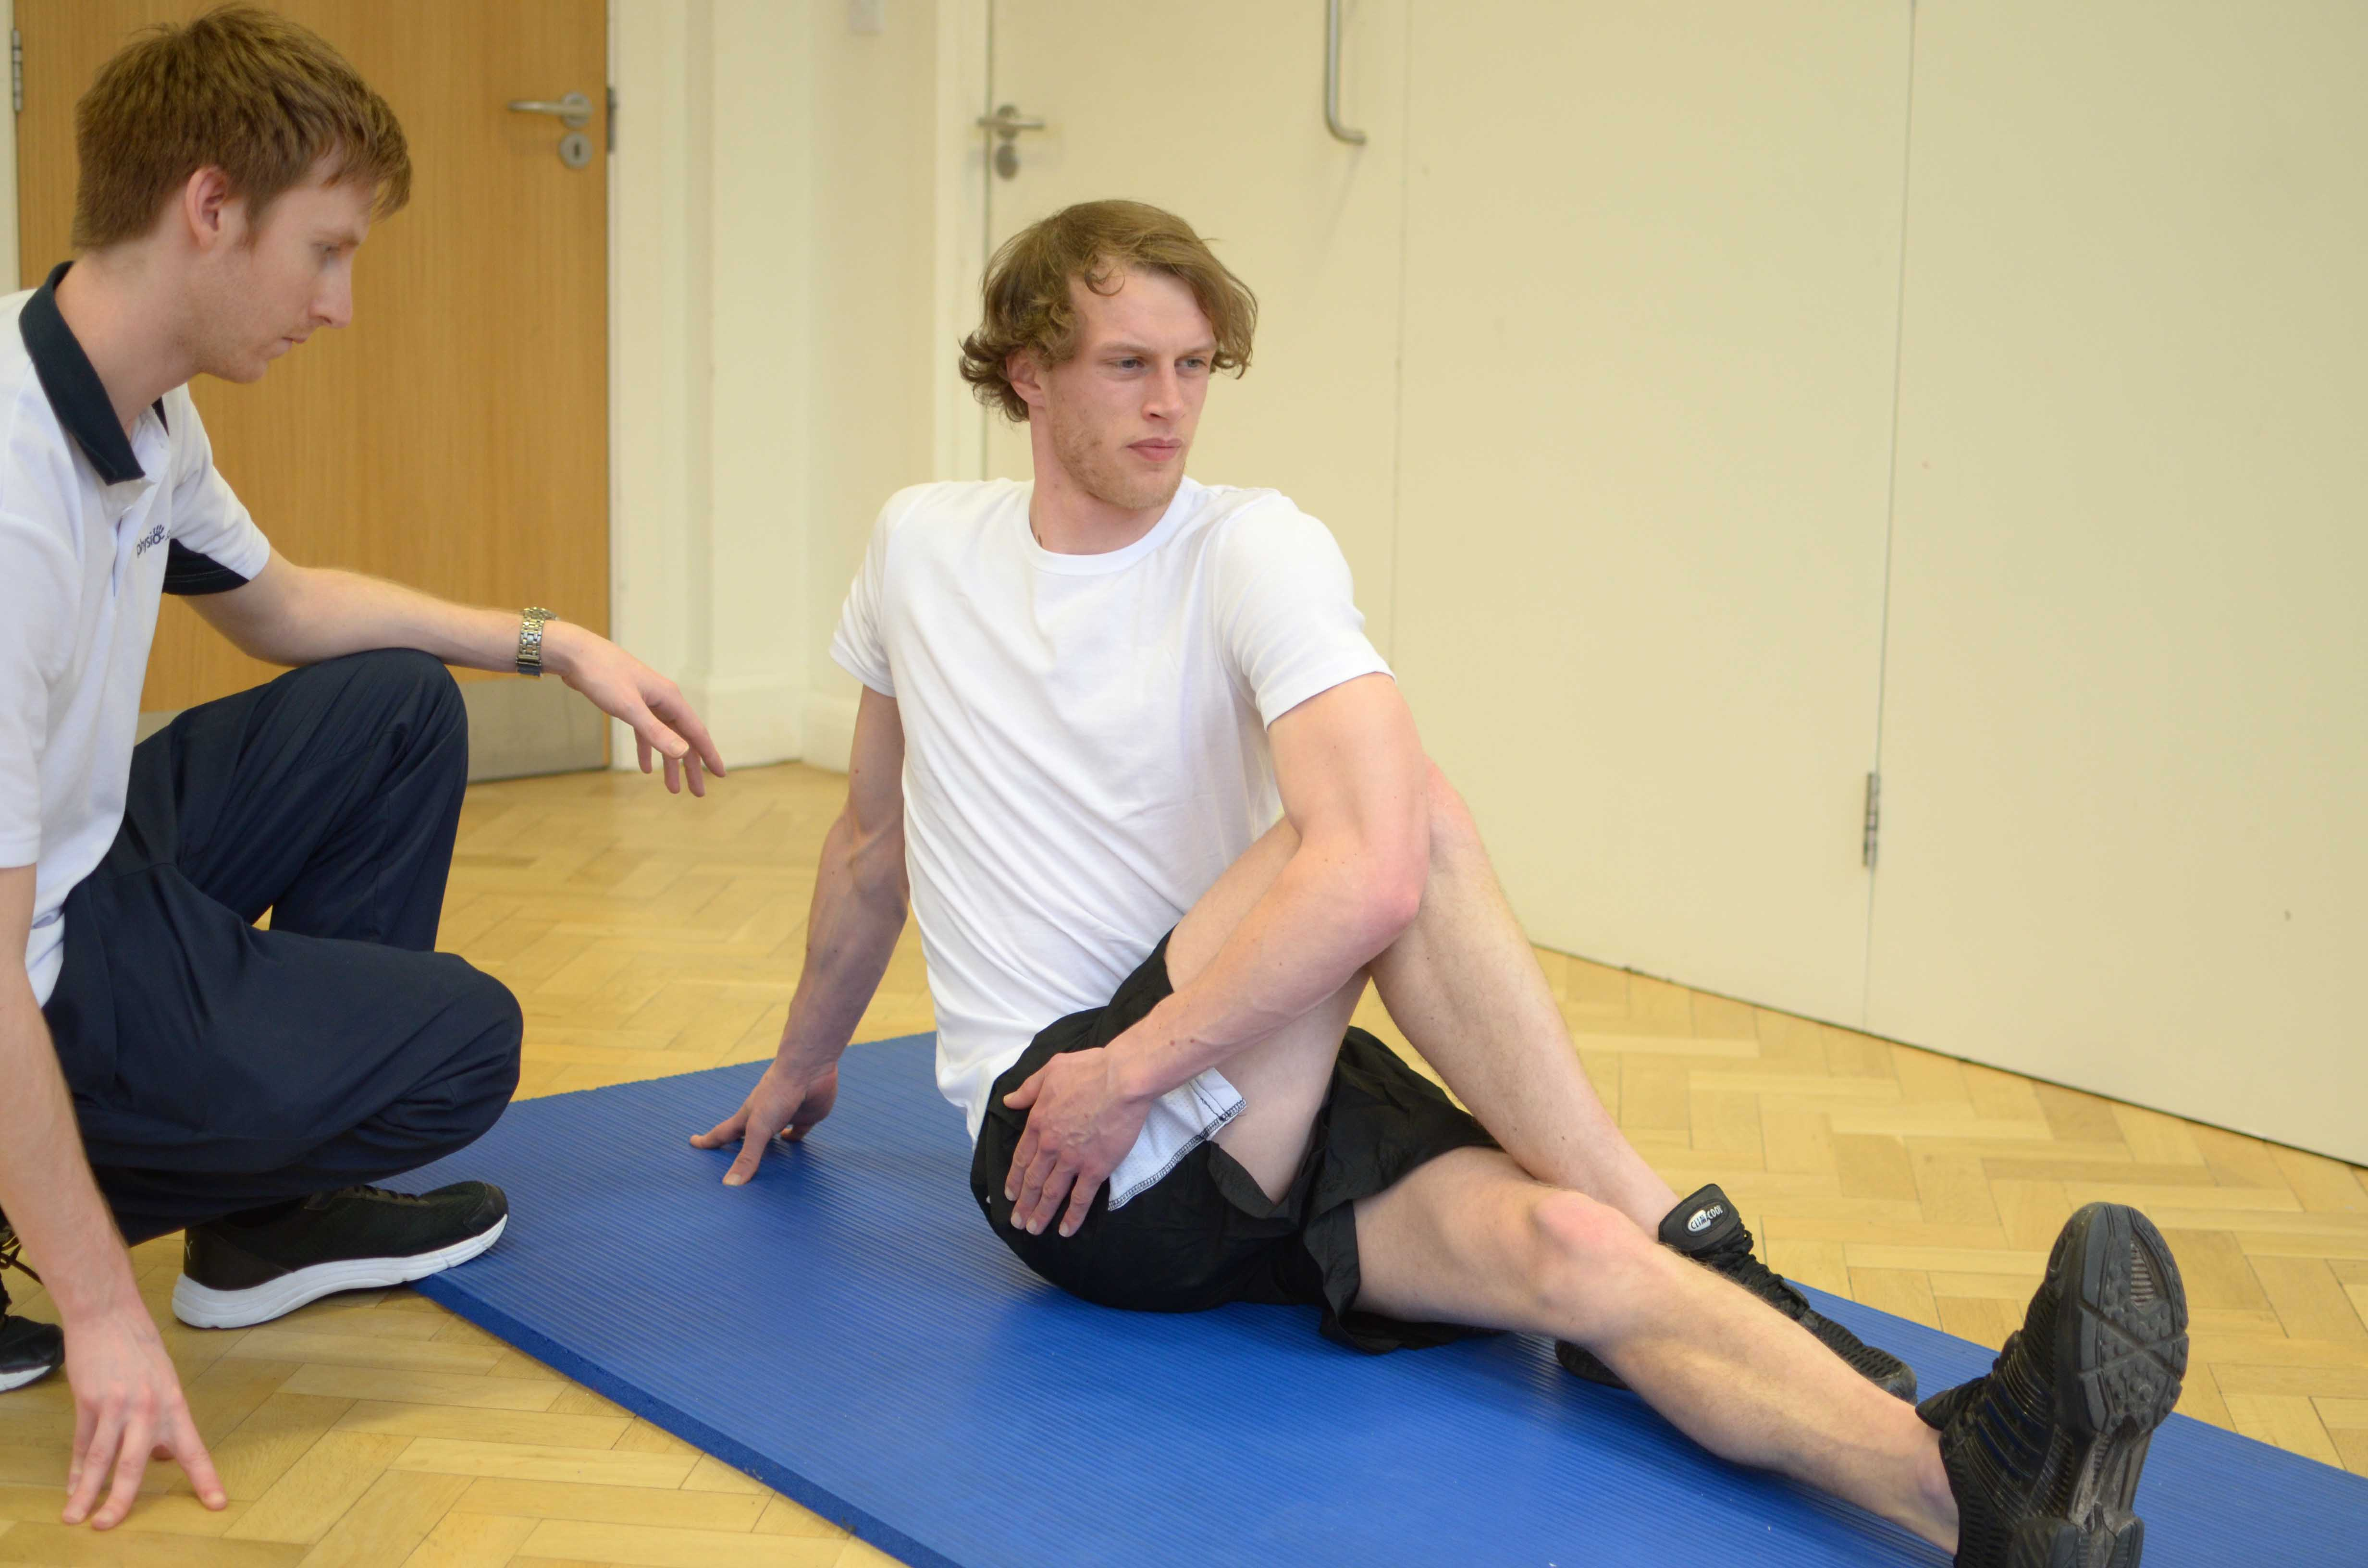 Active stretches to improve range of movement supervised by a physiotherapist